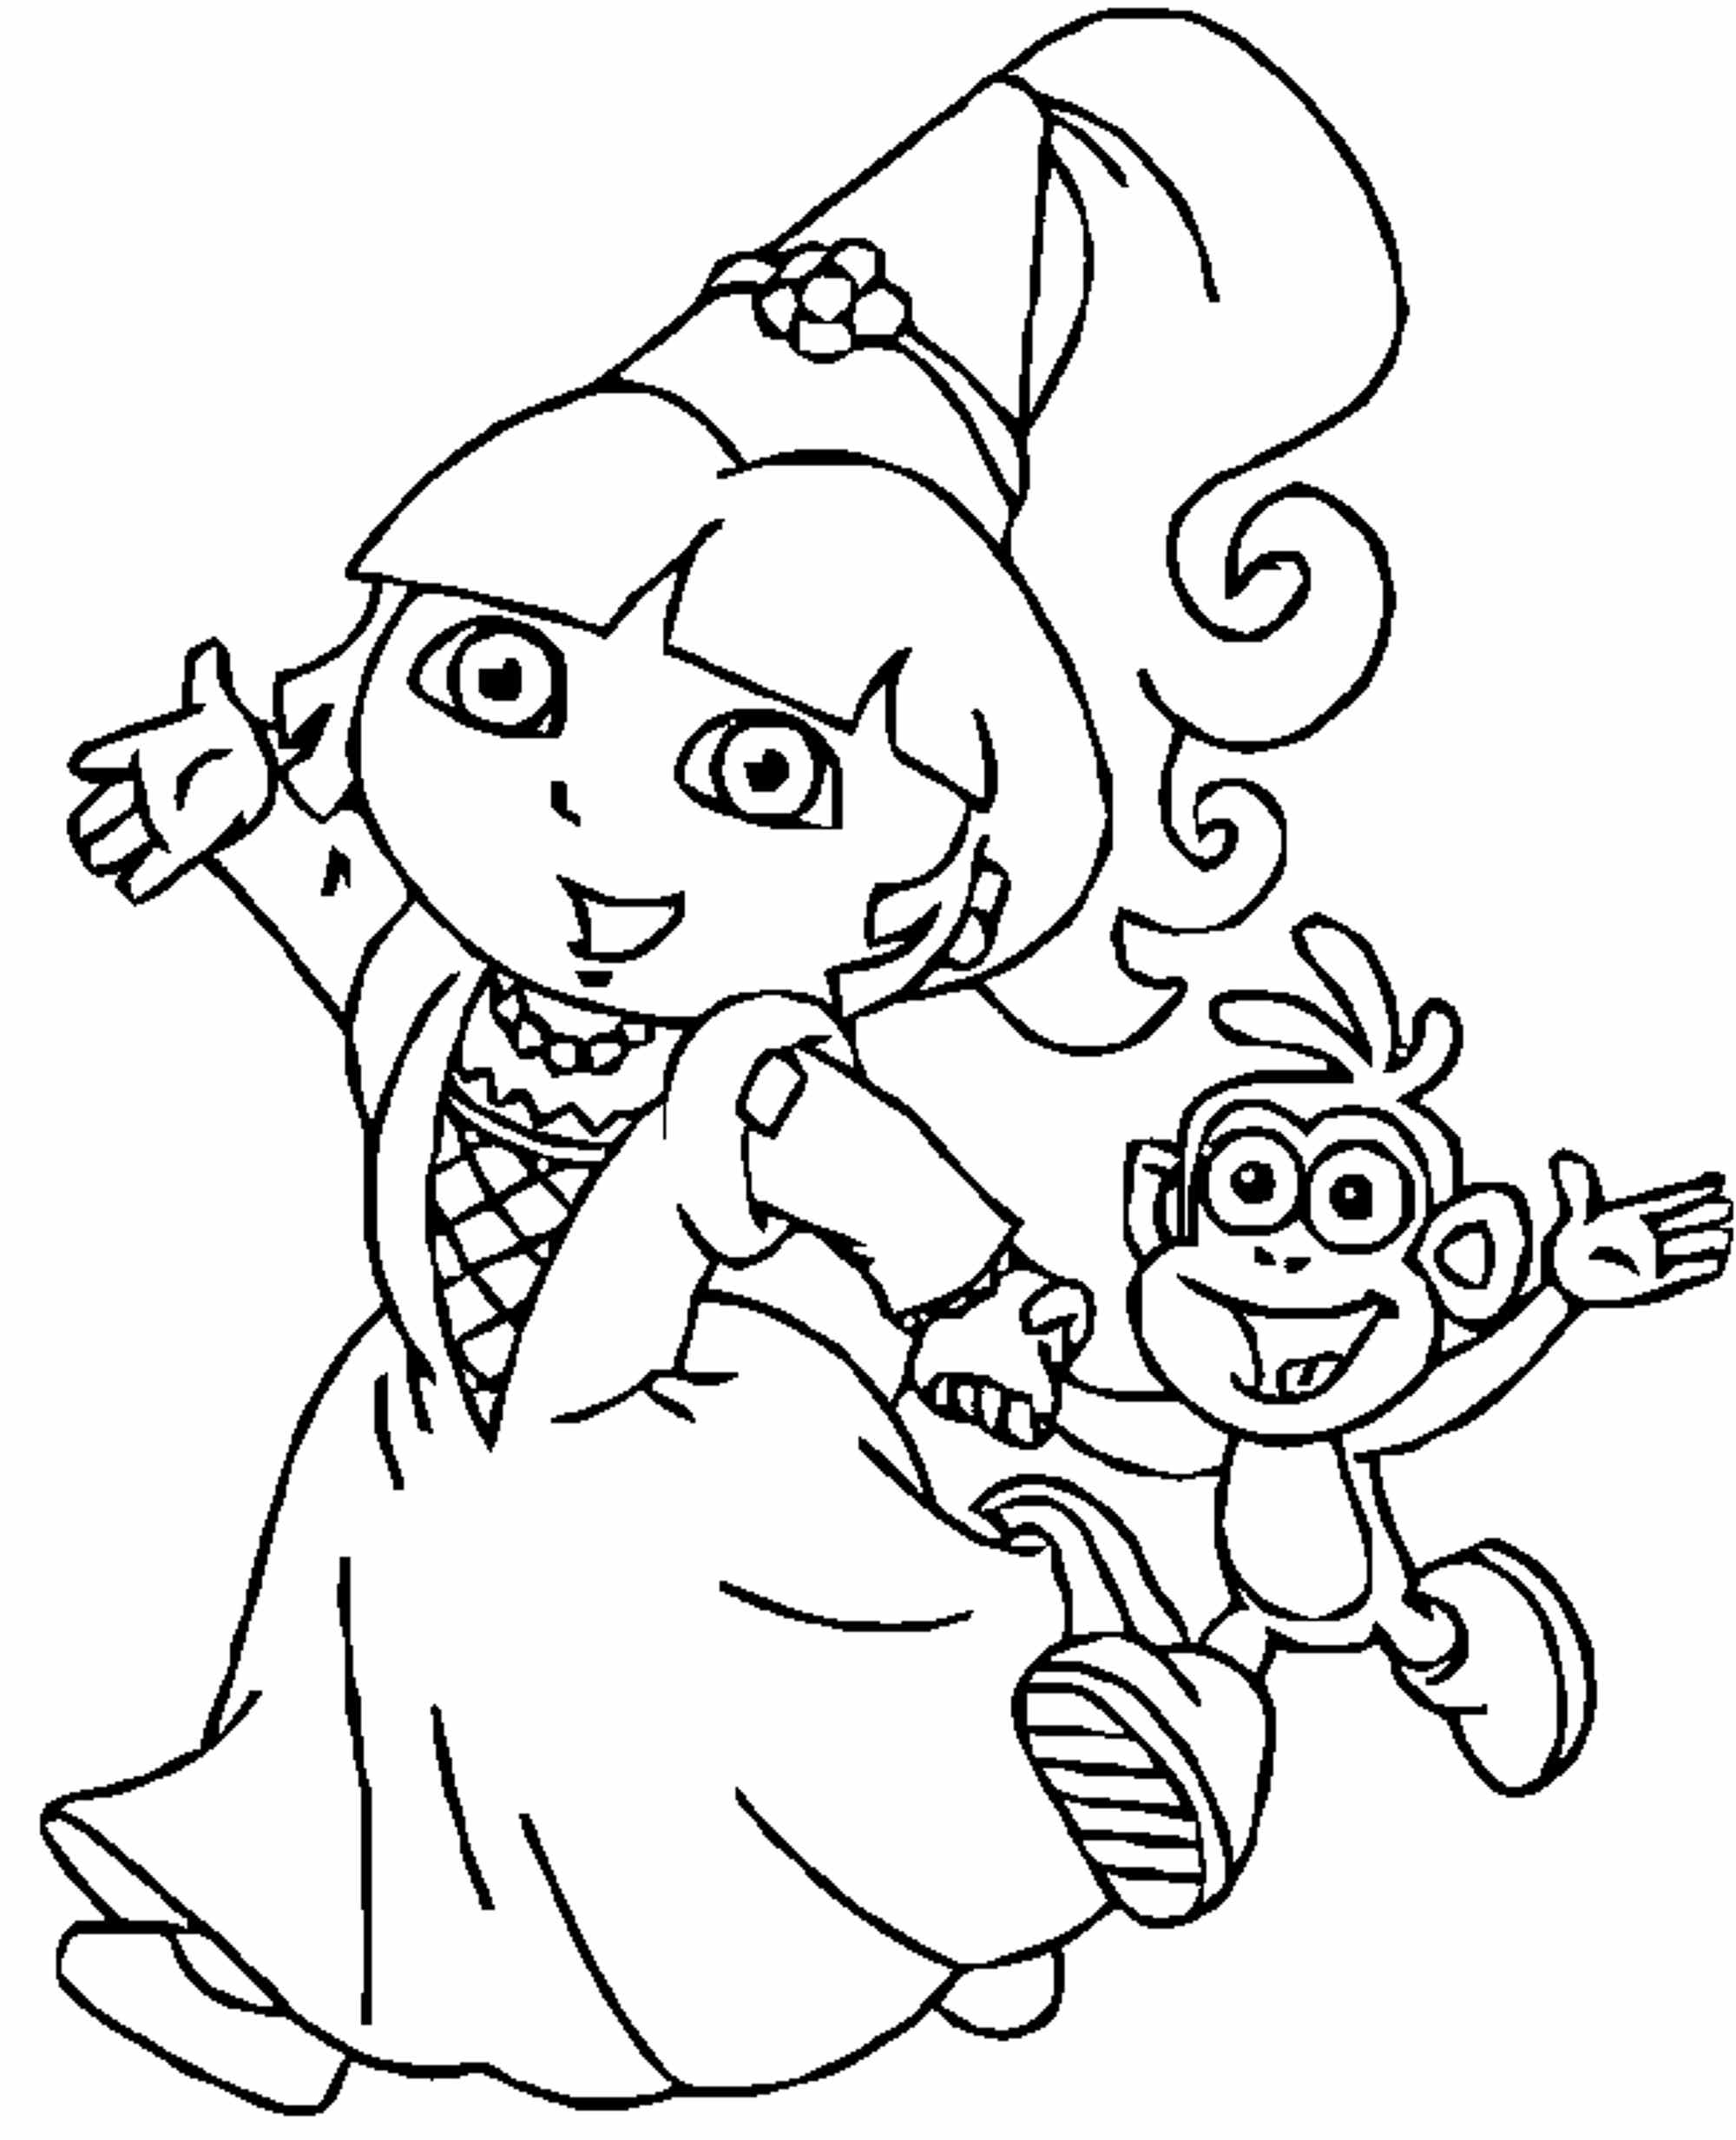 Coloring Pages Halloween Princess : Print download dora coloring pages to learn new things